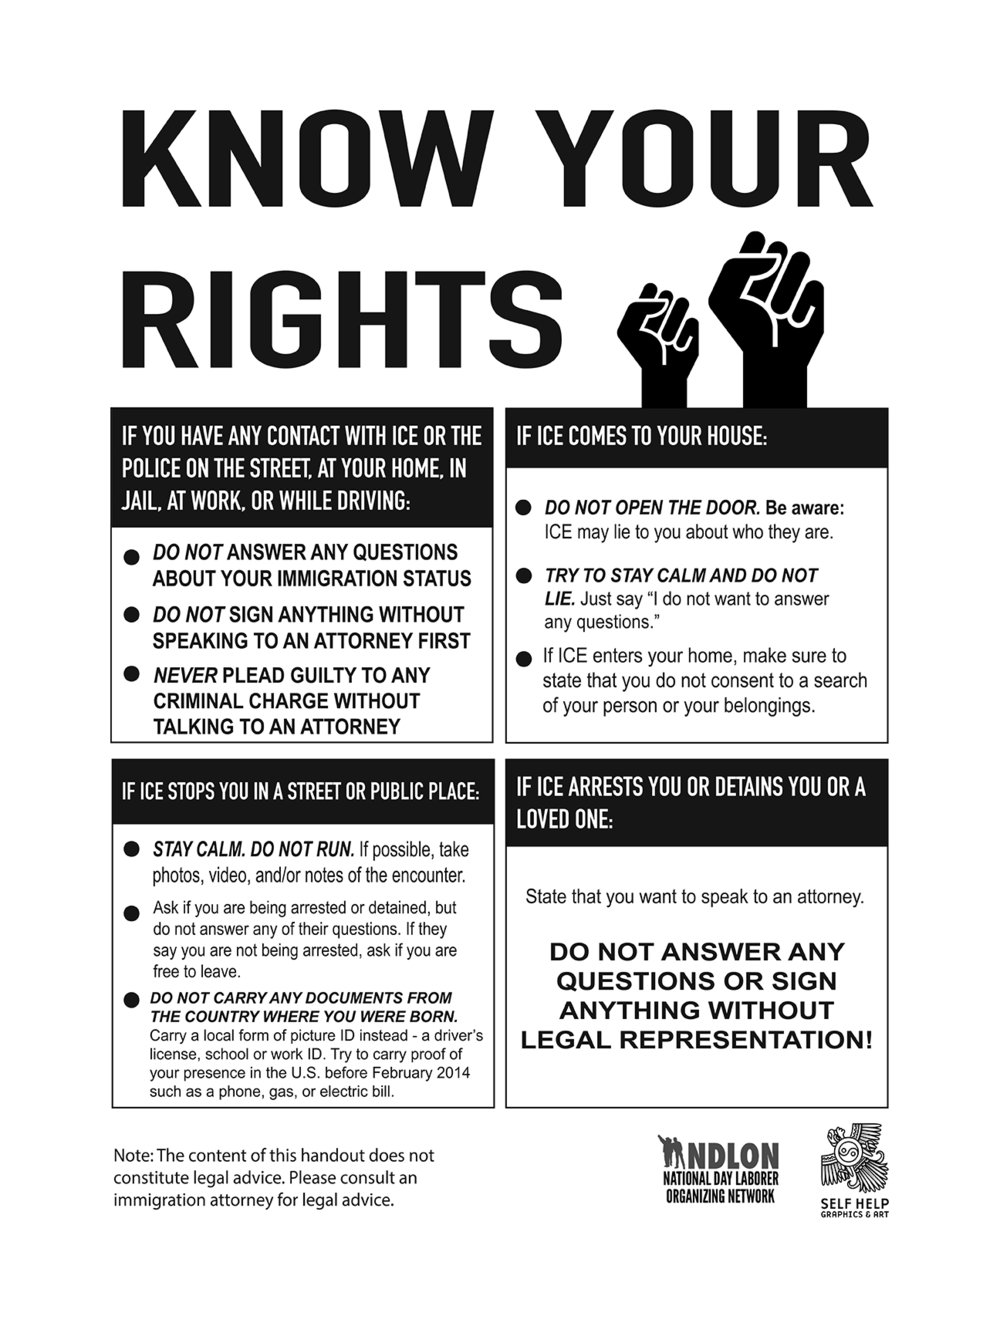 knowyourrights_general-1.jpg